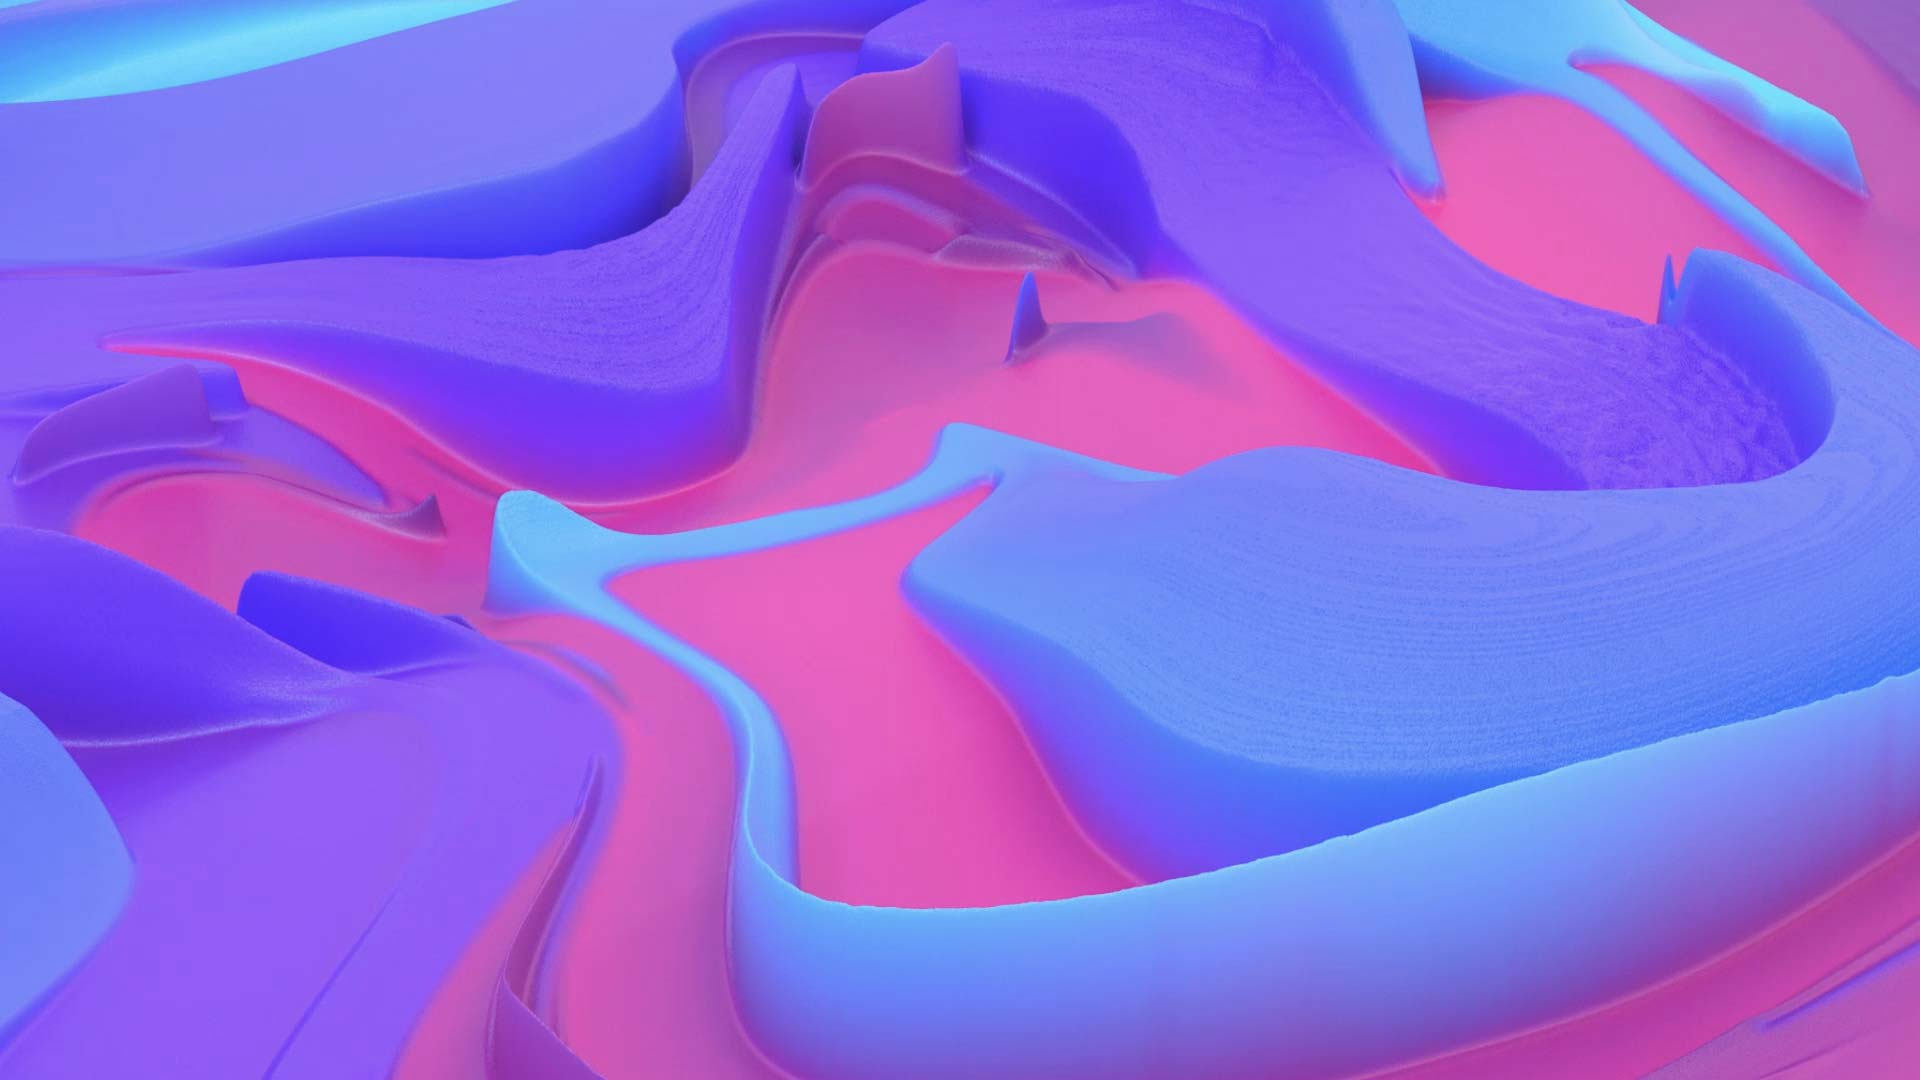 An abstract background image